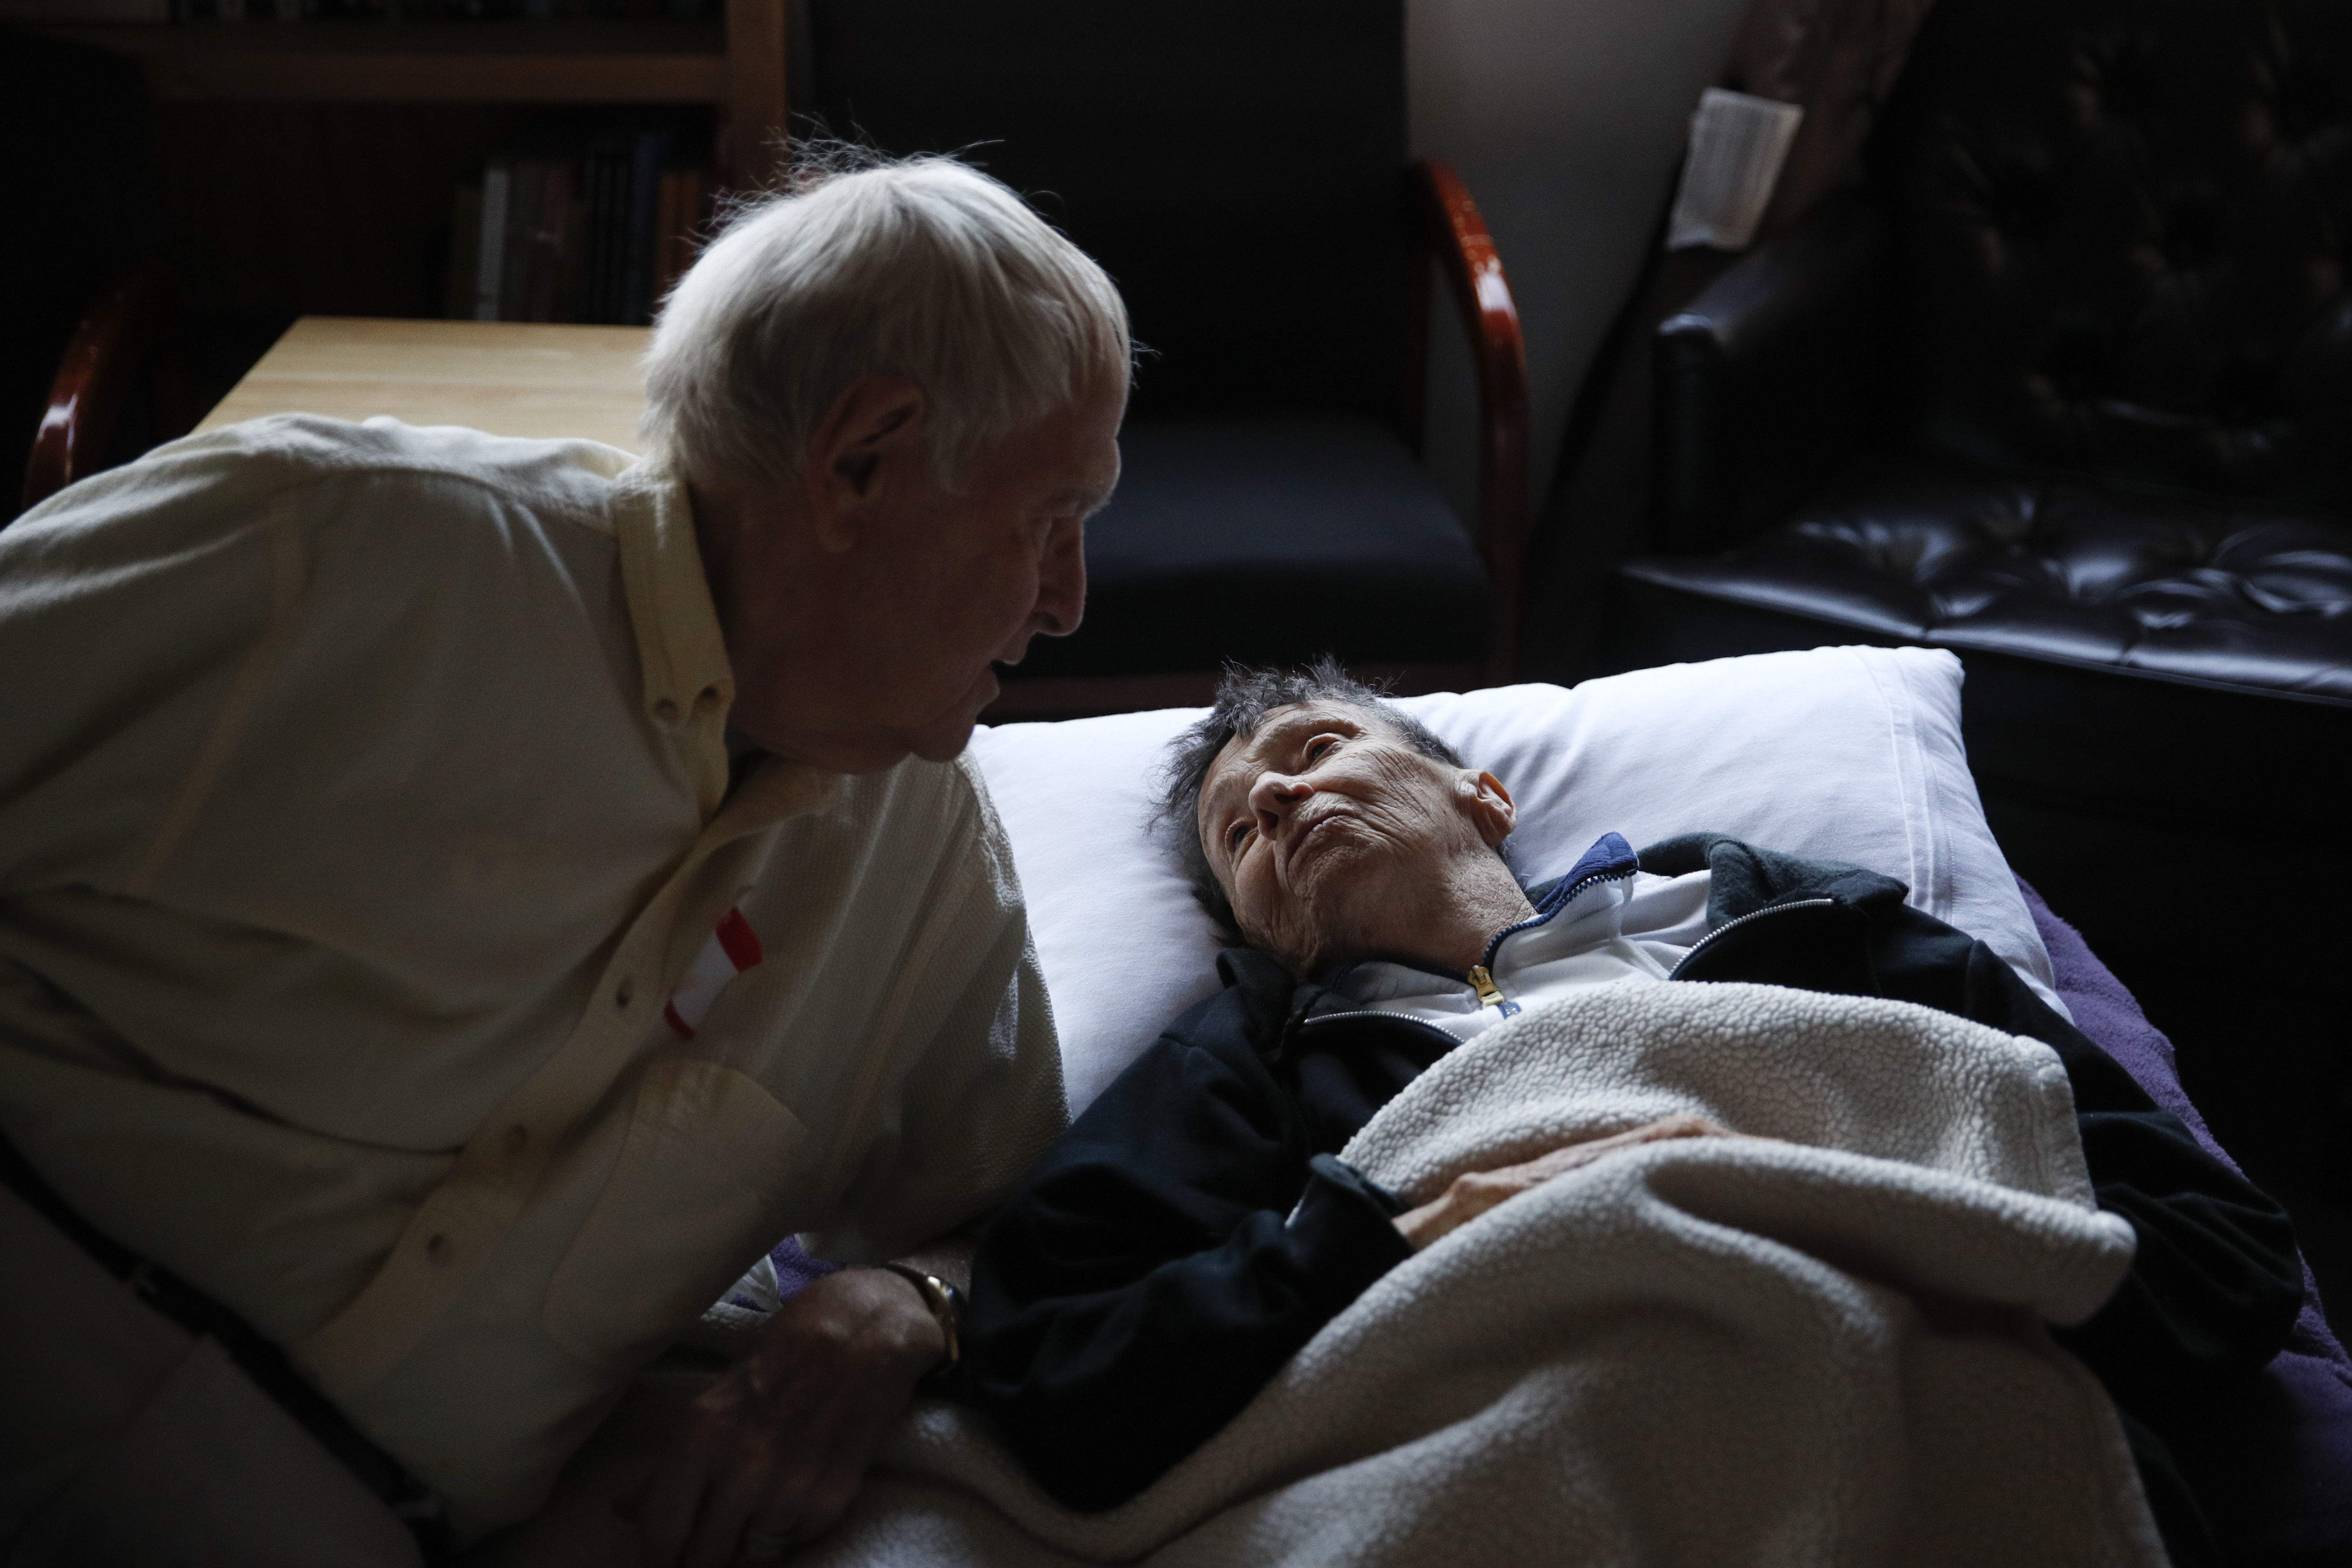 <div class='meta'><div class='origin-logo' data-origin='none'></div><span class='caption-text' data-credit='Jae C. Hong/AP Photo'>Beatrice Thomas, 85, right, chats with her husband, Al, also 85, at First United Methodist Church that doubles as an evacuation shelter Sunday, Oct. 15, 2017, in Santa Rosa, Calif.</span></div>